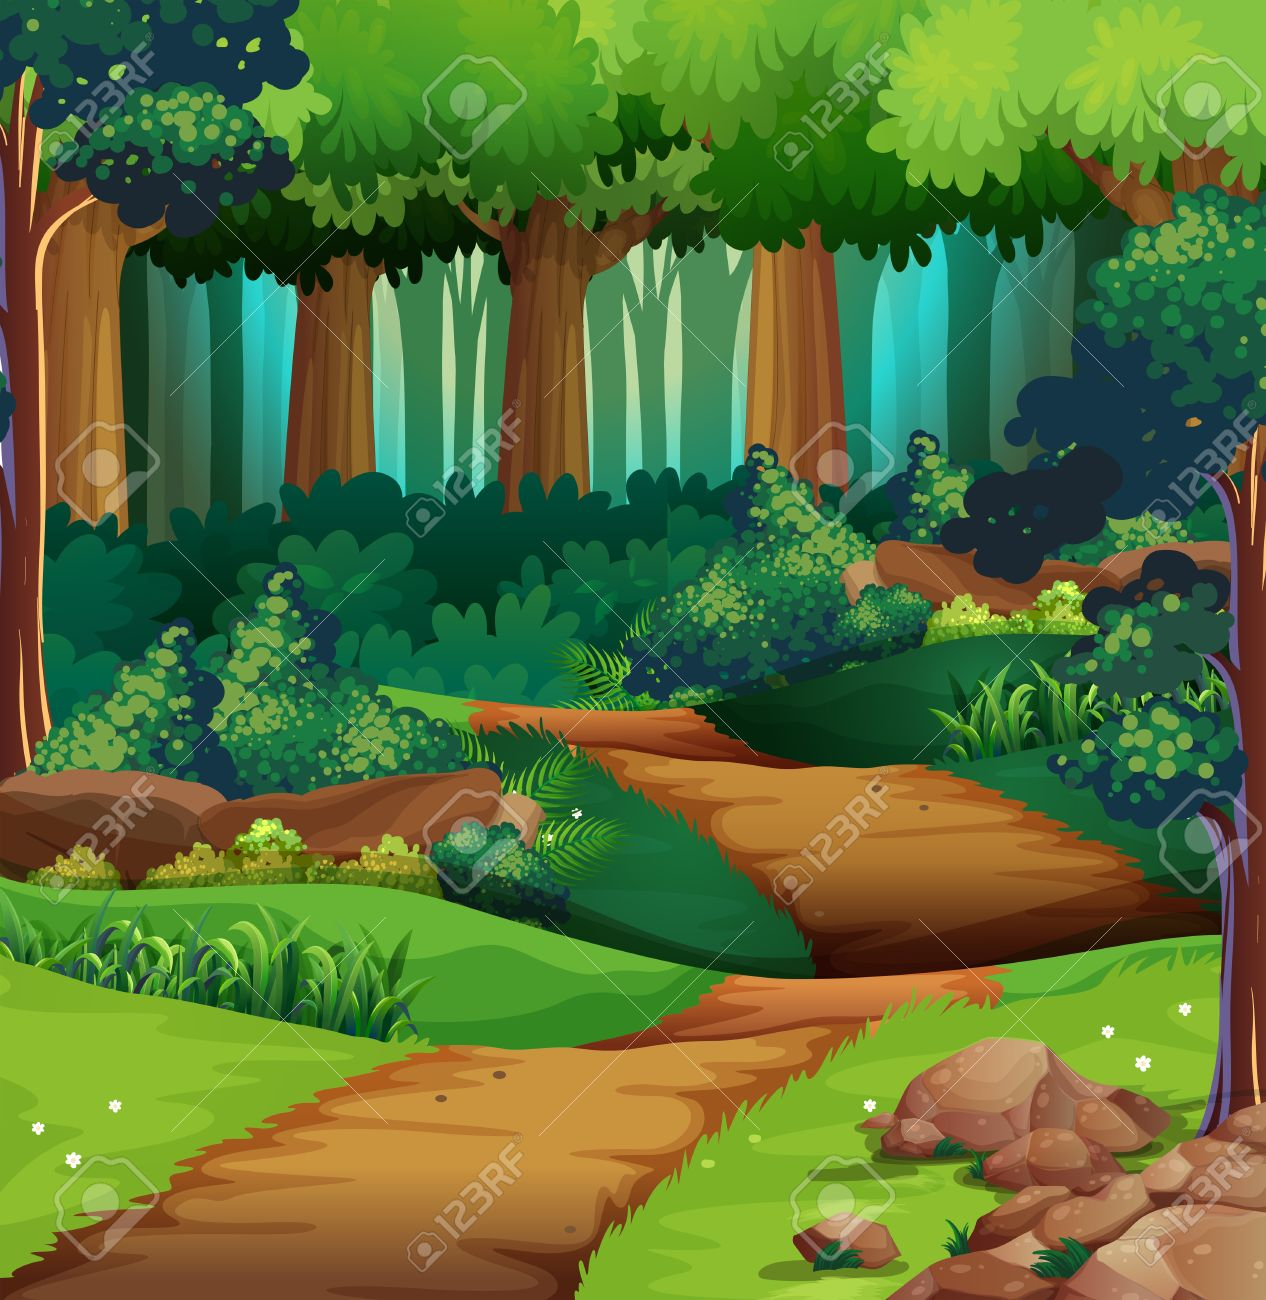 Forest scene with dirt trail illustration.